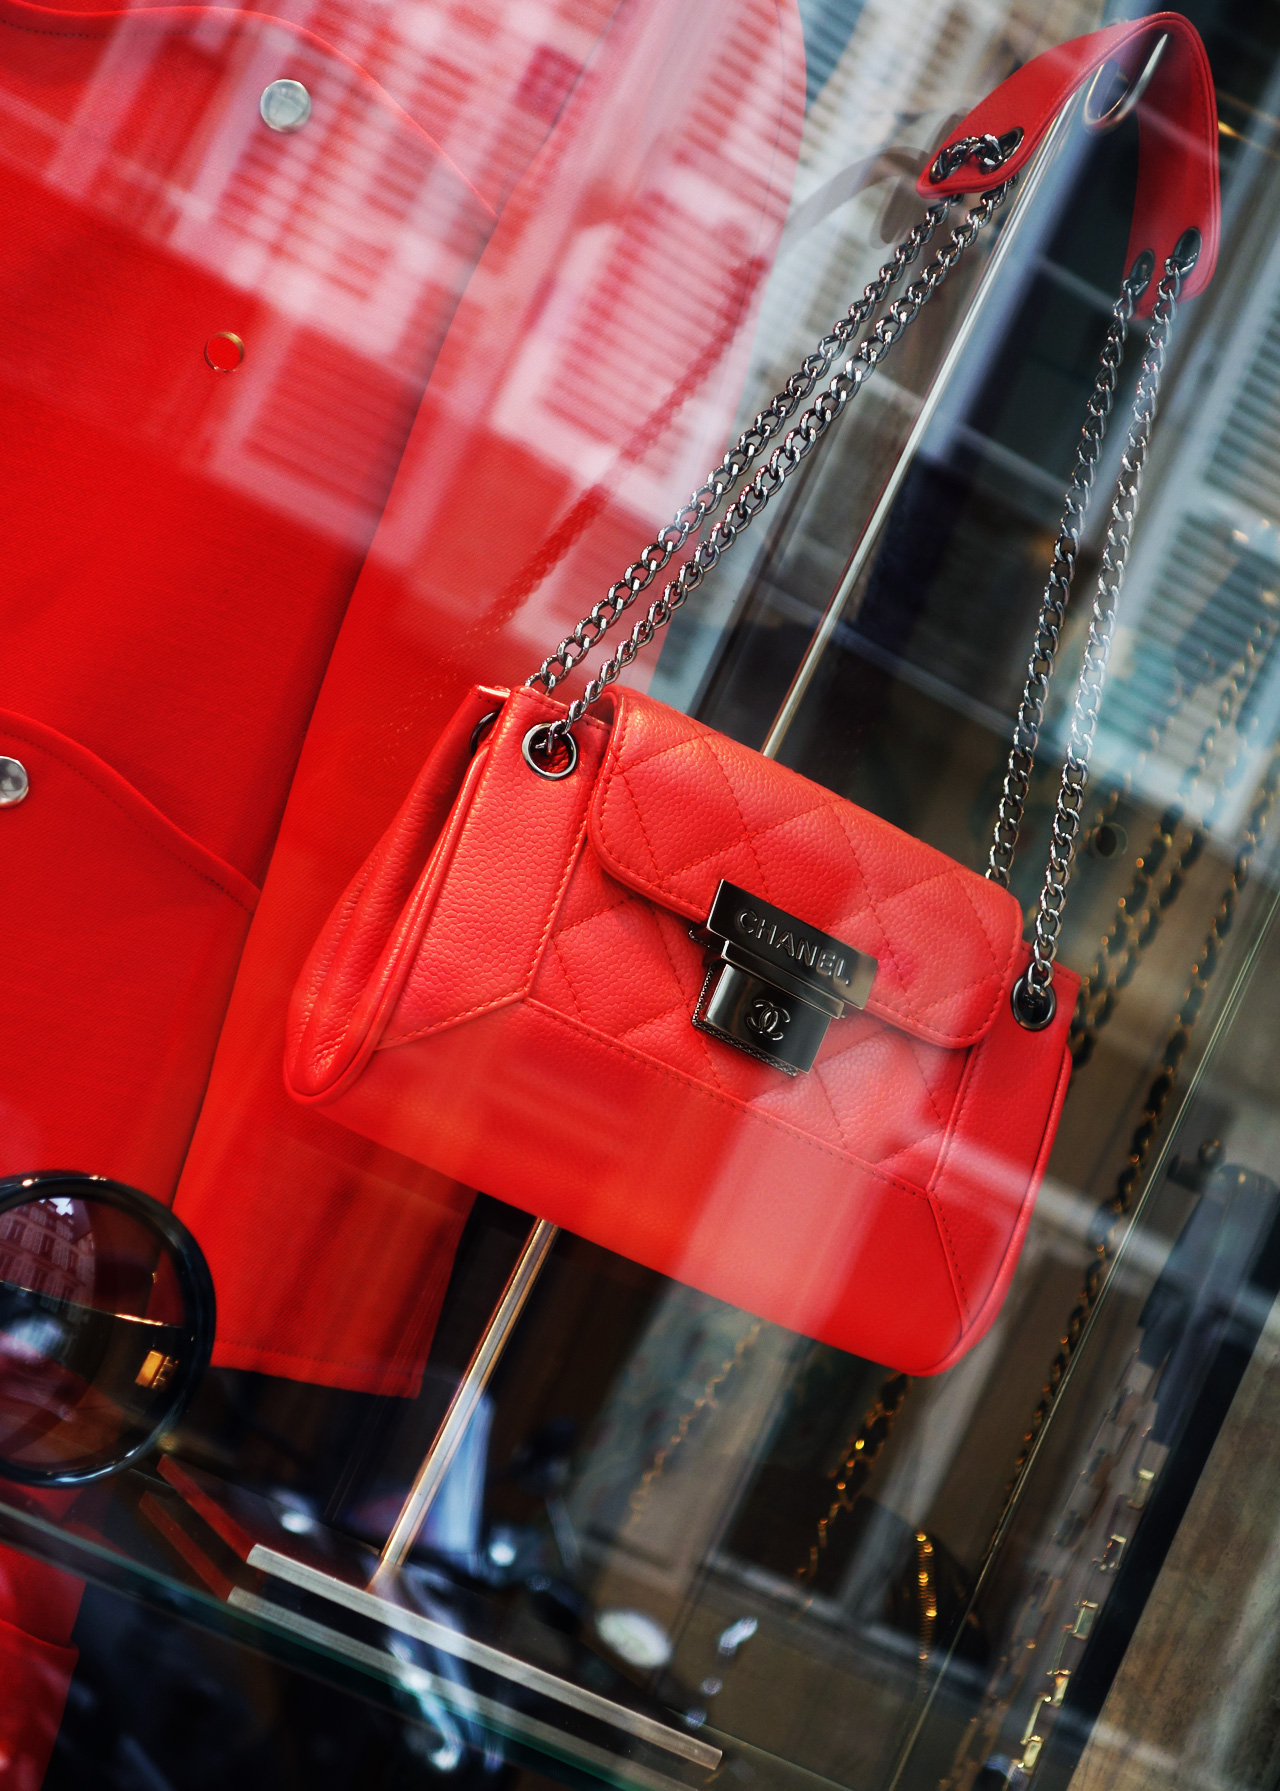 13_MB-select-Boutique-vitrine-droite-detail-6